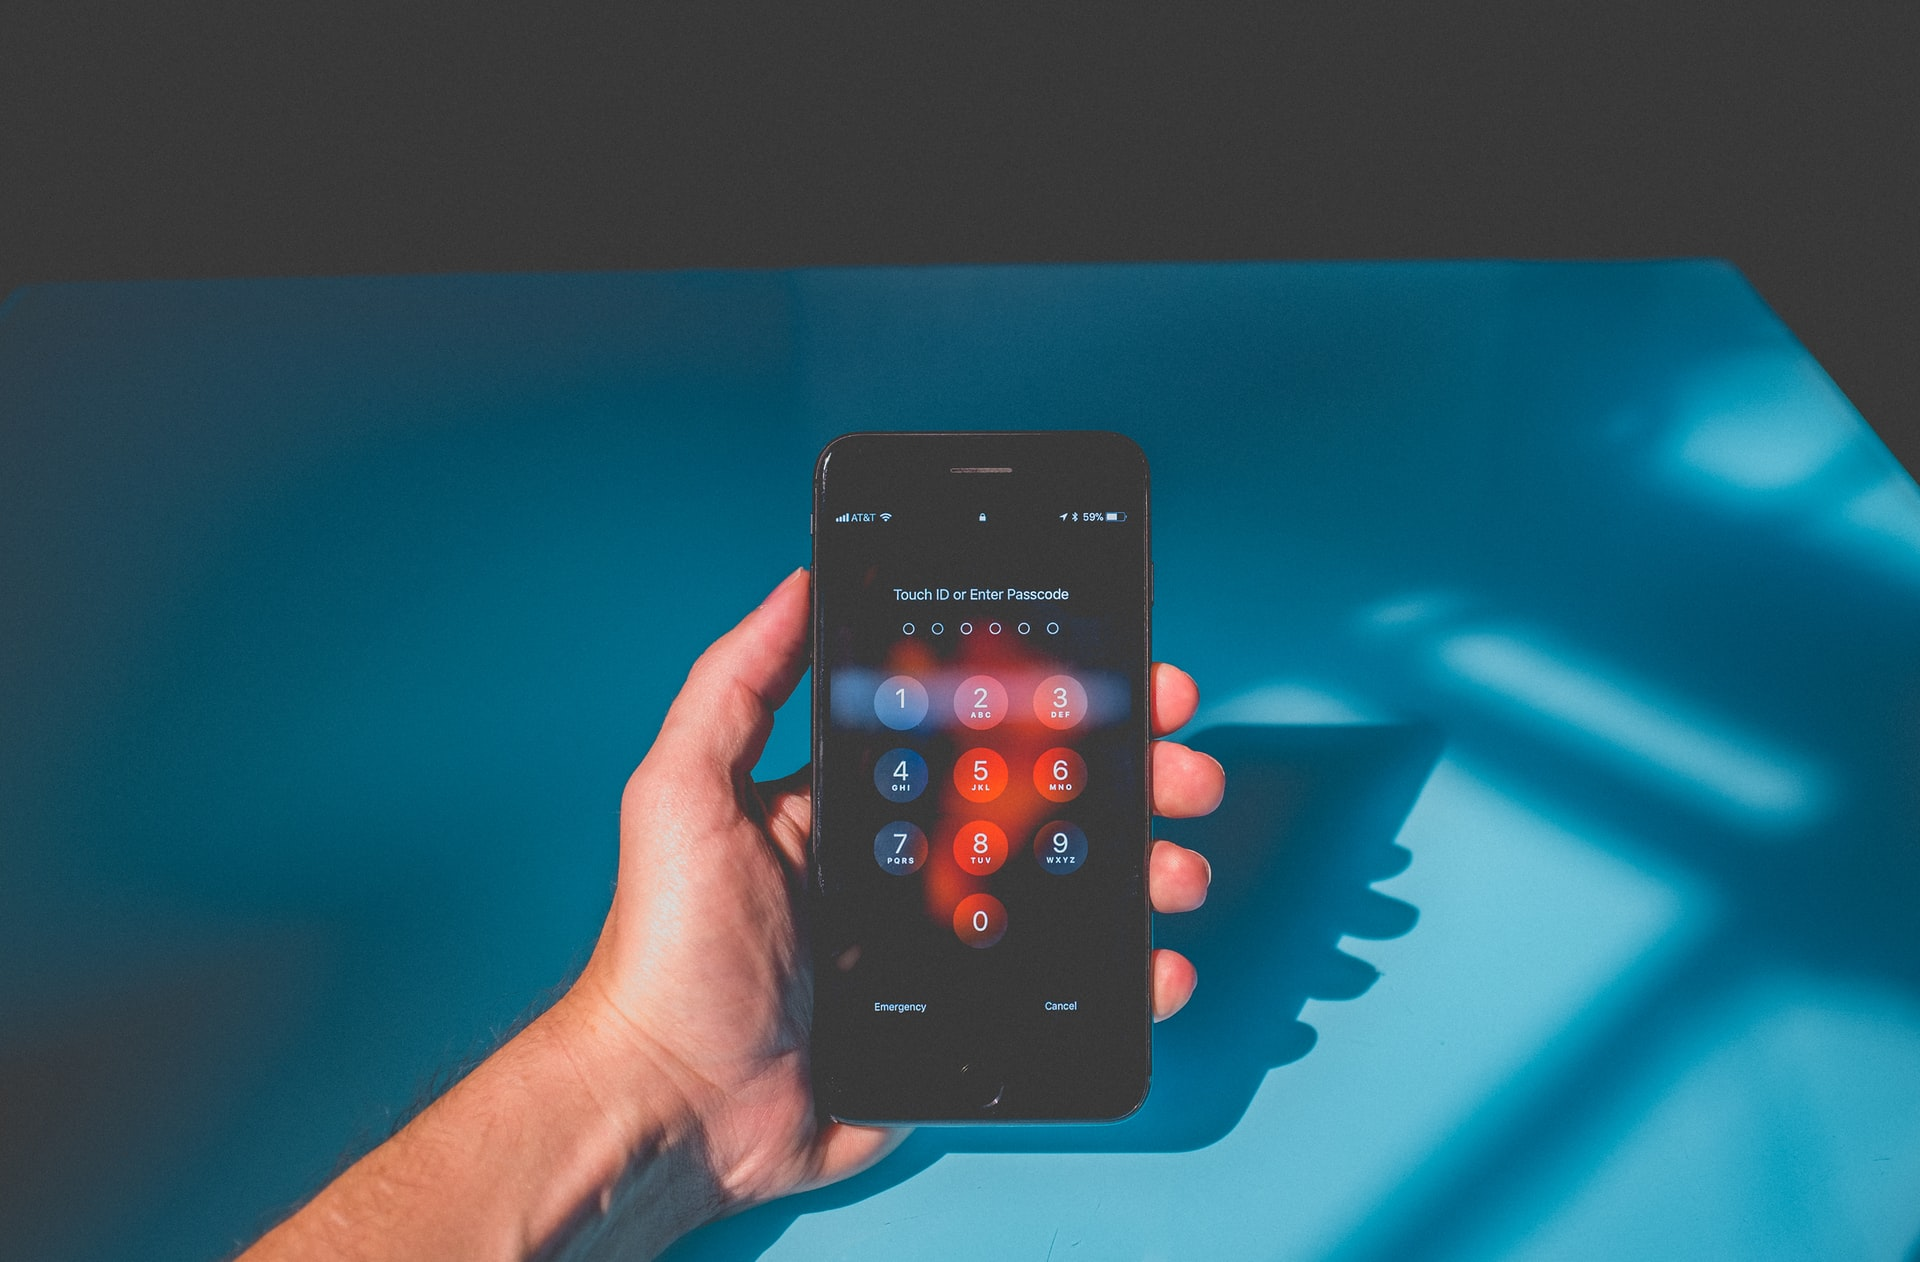 What have you done to secure your smartphone?